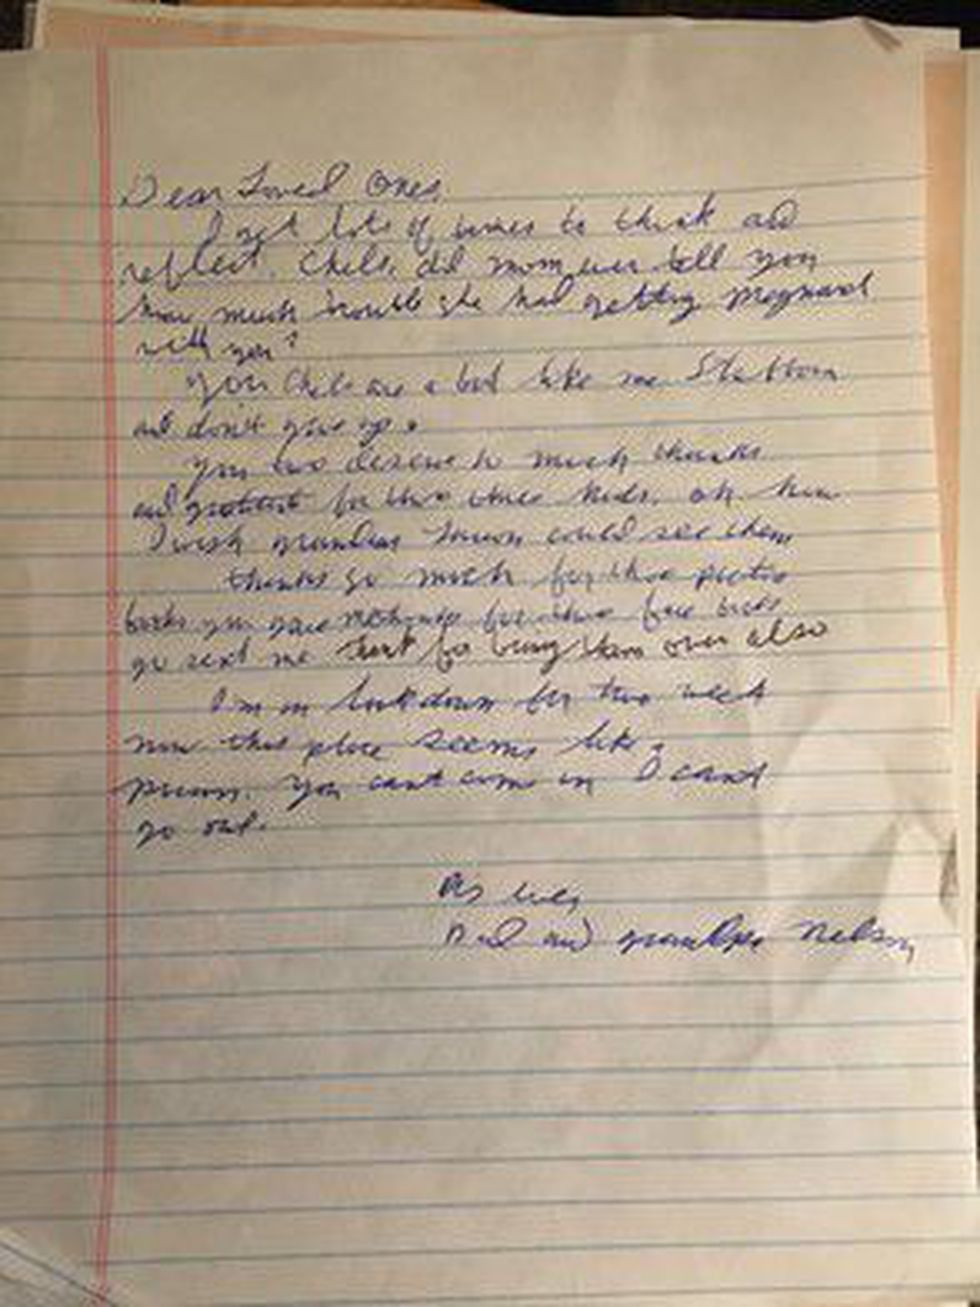 "One of Milt Nelson's letters to his family from Oct. 2020. He has been unable to see his family in person, other than visits to his South Dakota nursing home through glass, due to the pandemic. In the last paragraph, he writes that he is in lockdown and it feels like ""a prison."""